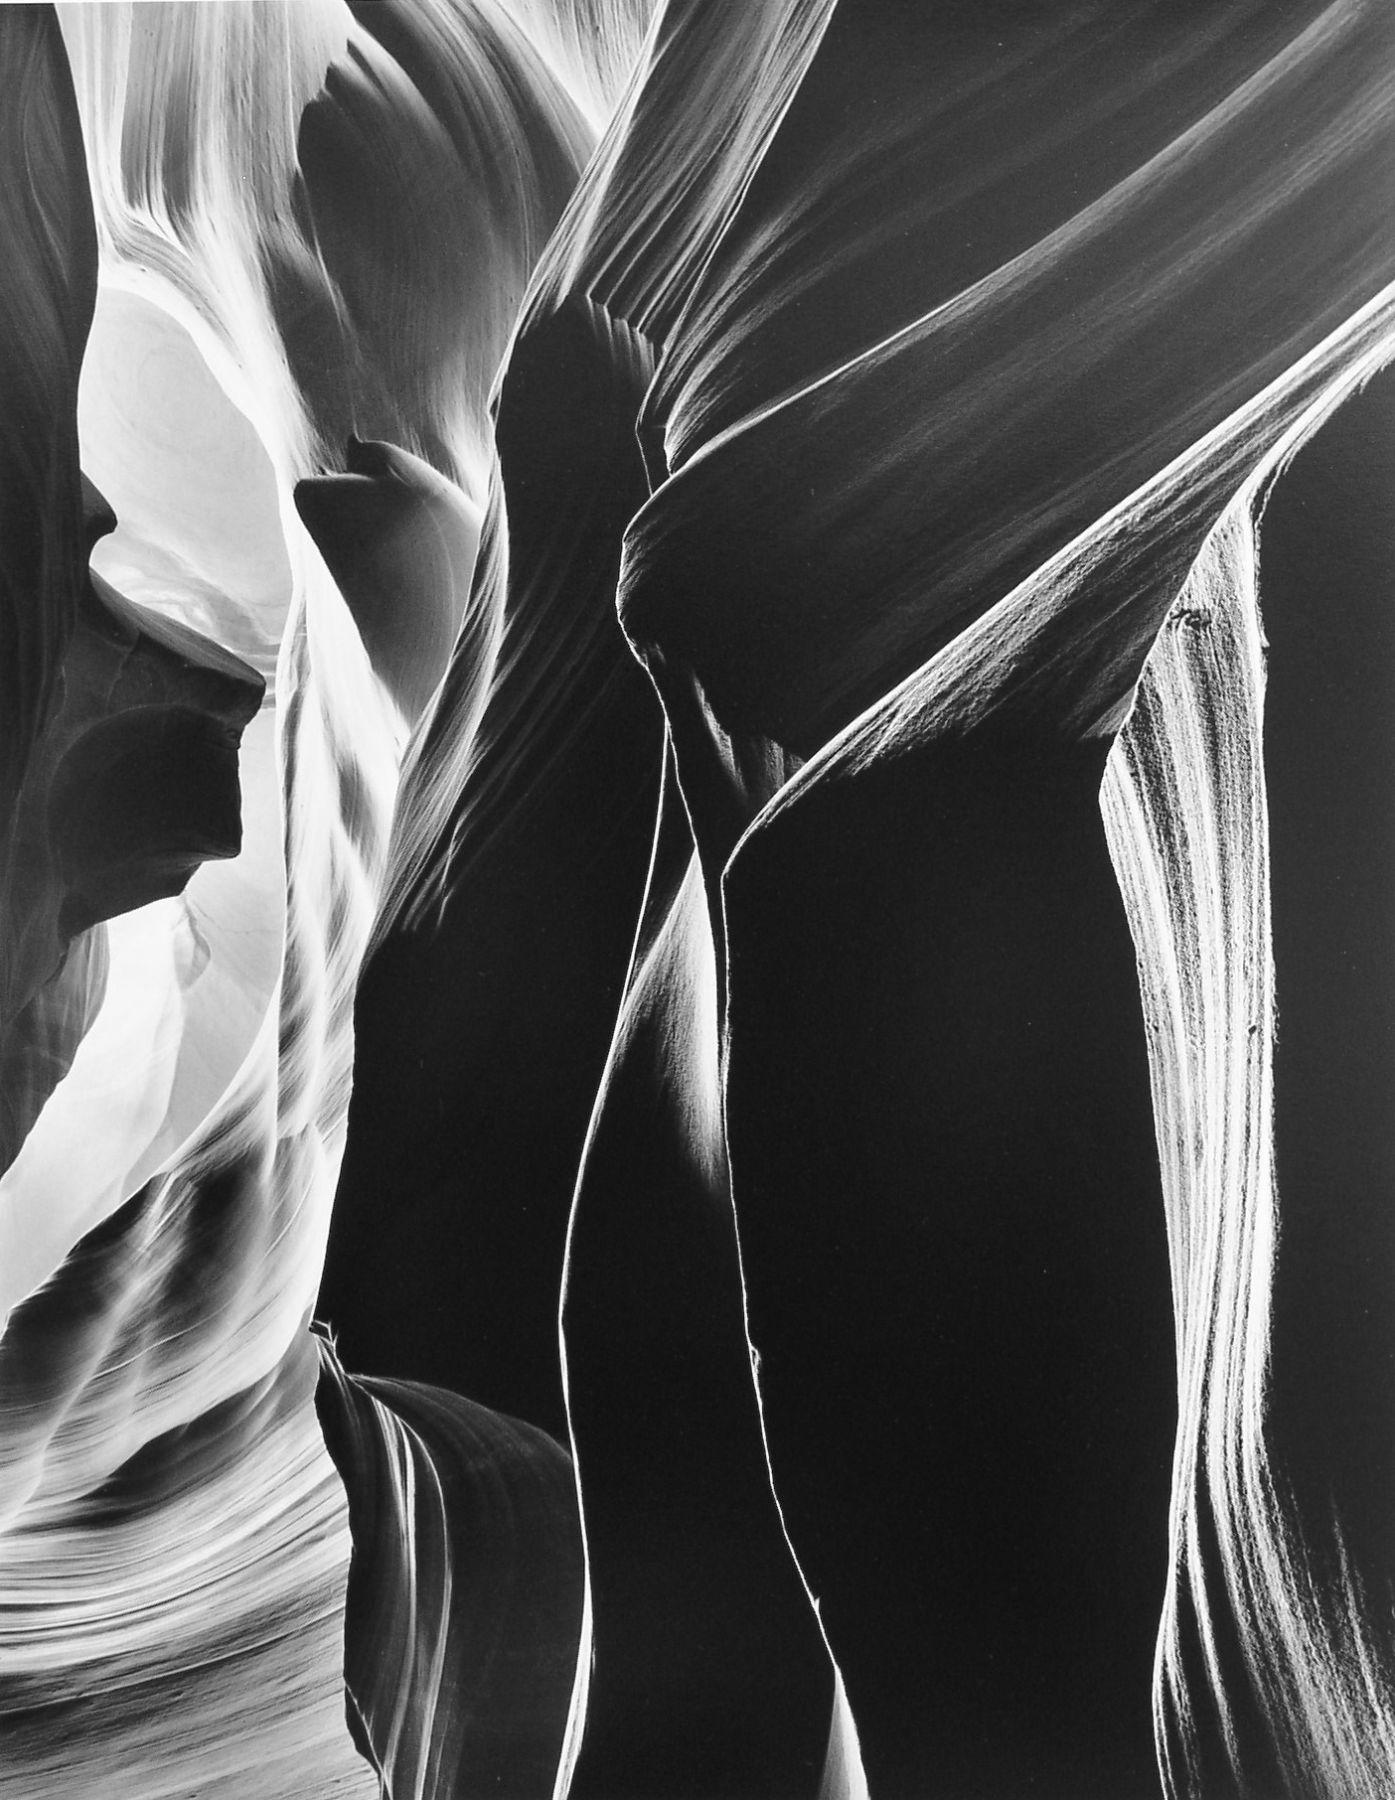 The Slit, Antelope Canyon, 1980, 28 x 22 Inches, Silver Gelatin Photograph